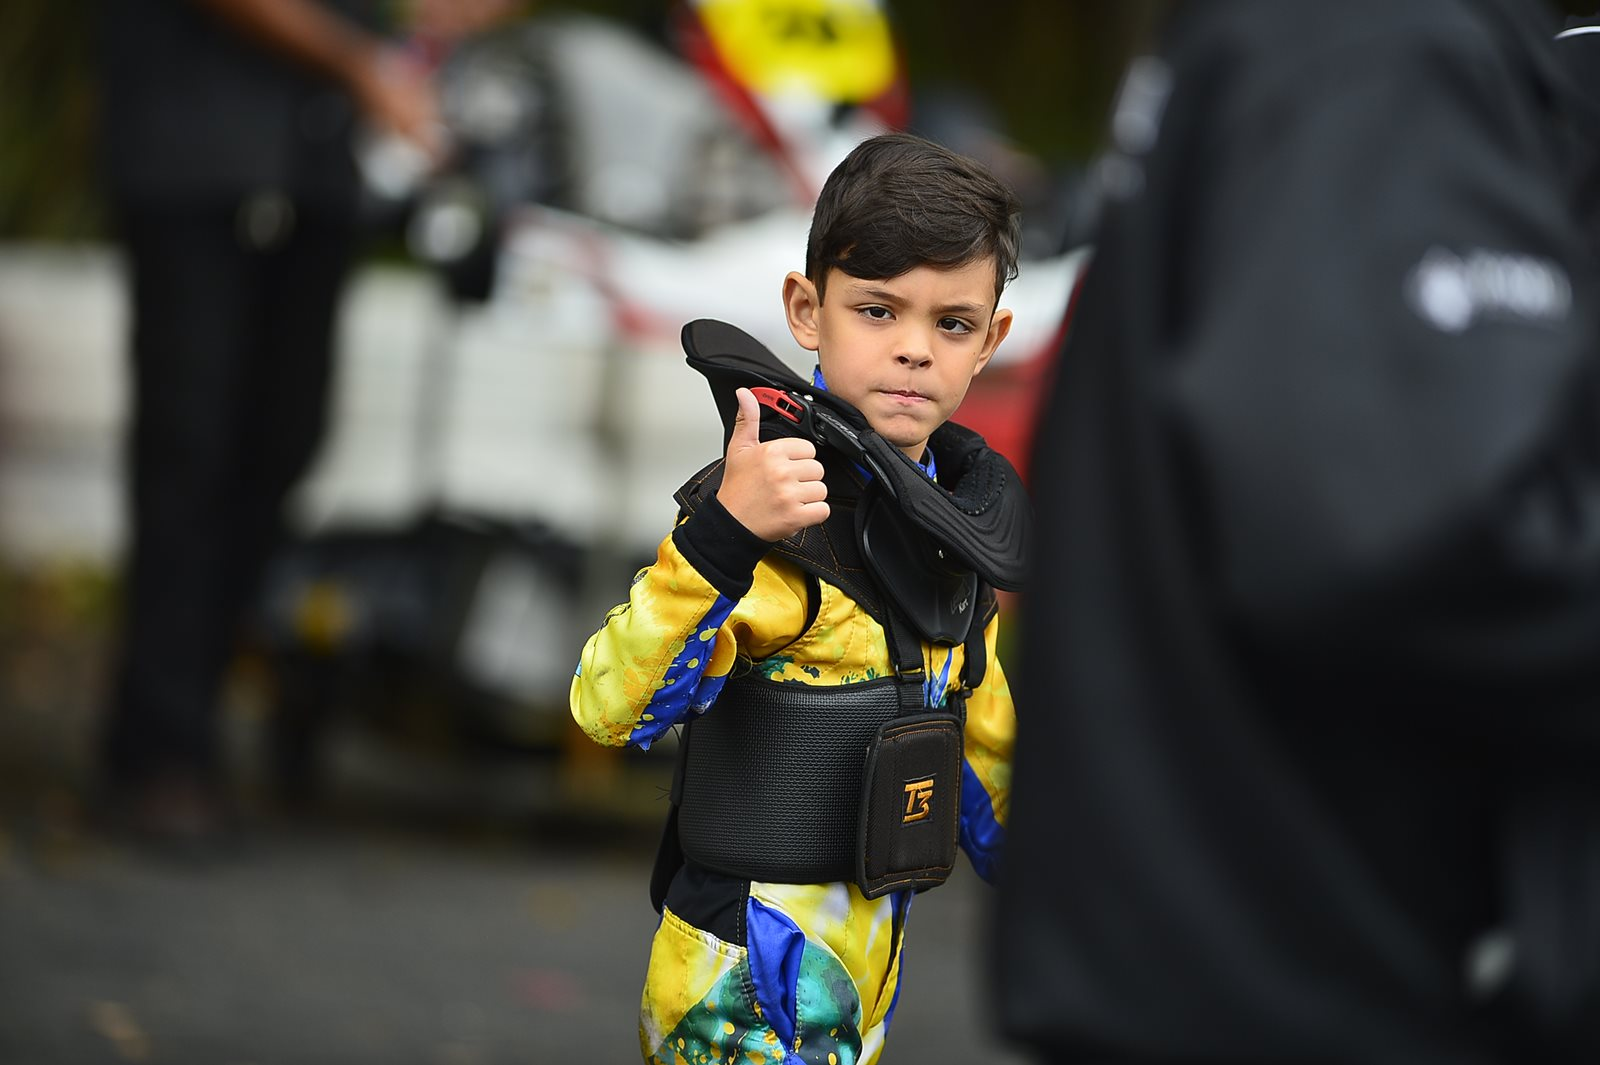 Photo of Kart – Com 7 anos, Augustus Toniolo é vice-campeão da oitava etapa do Paulista Light de Kart